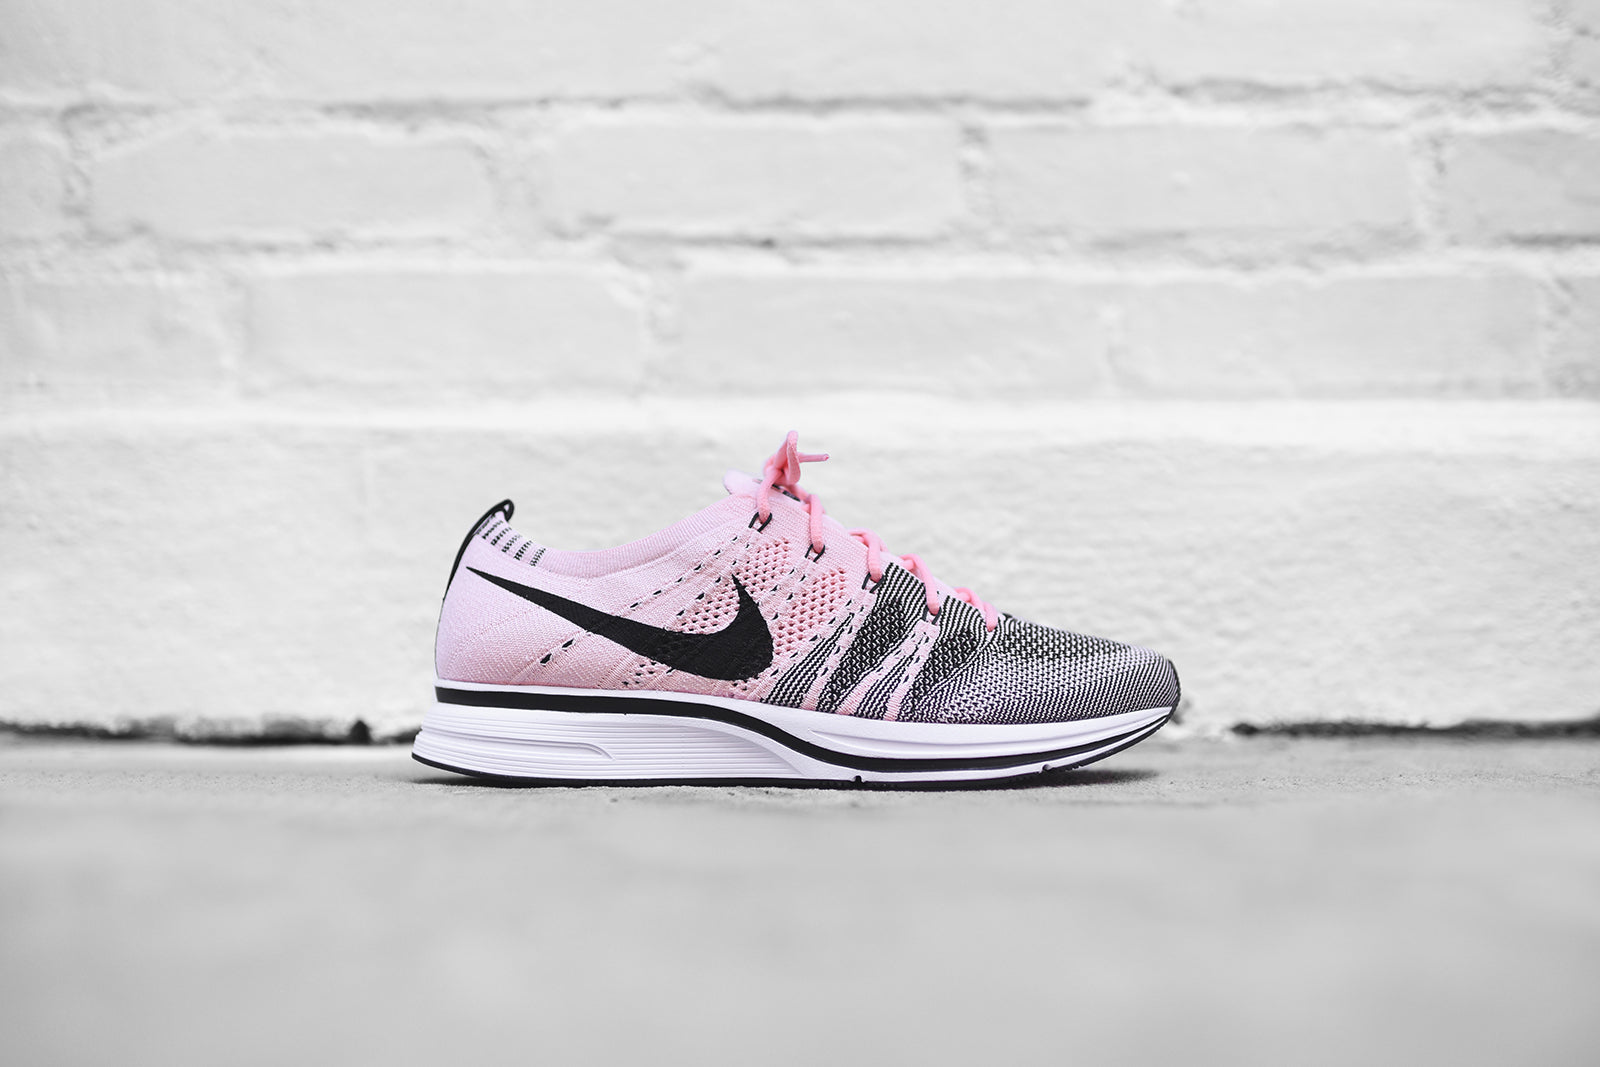 NikeLab Flyknit Trainer - Sunset Tint / Black / White